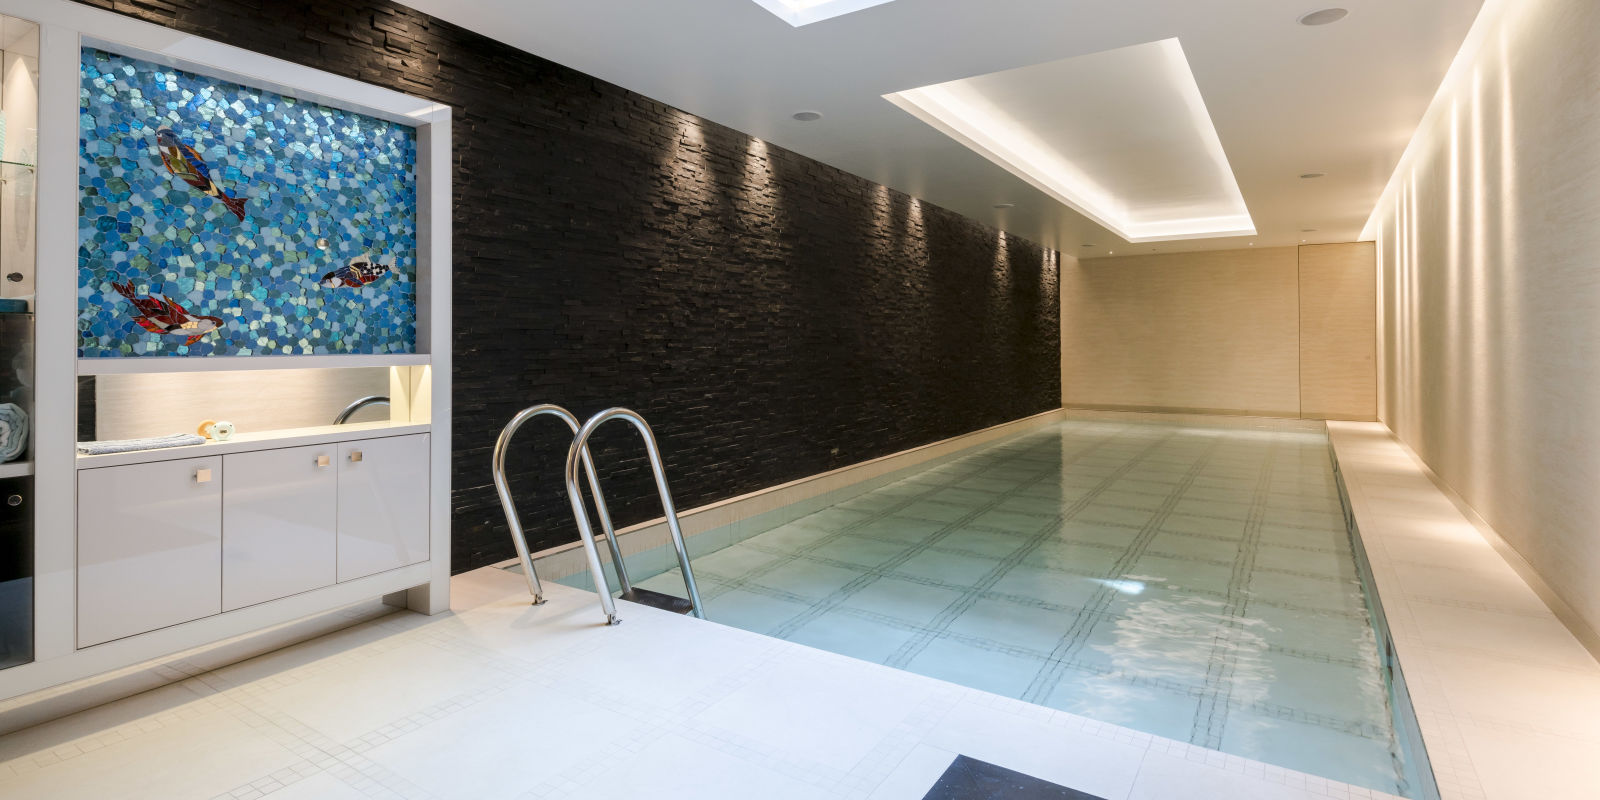 Kensington Property 39 S Swimming Pool Transforms Into A Dance Floor For Sale